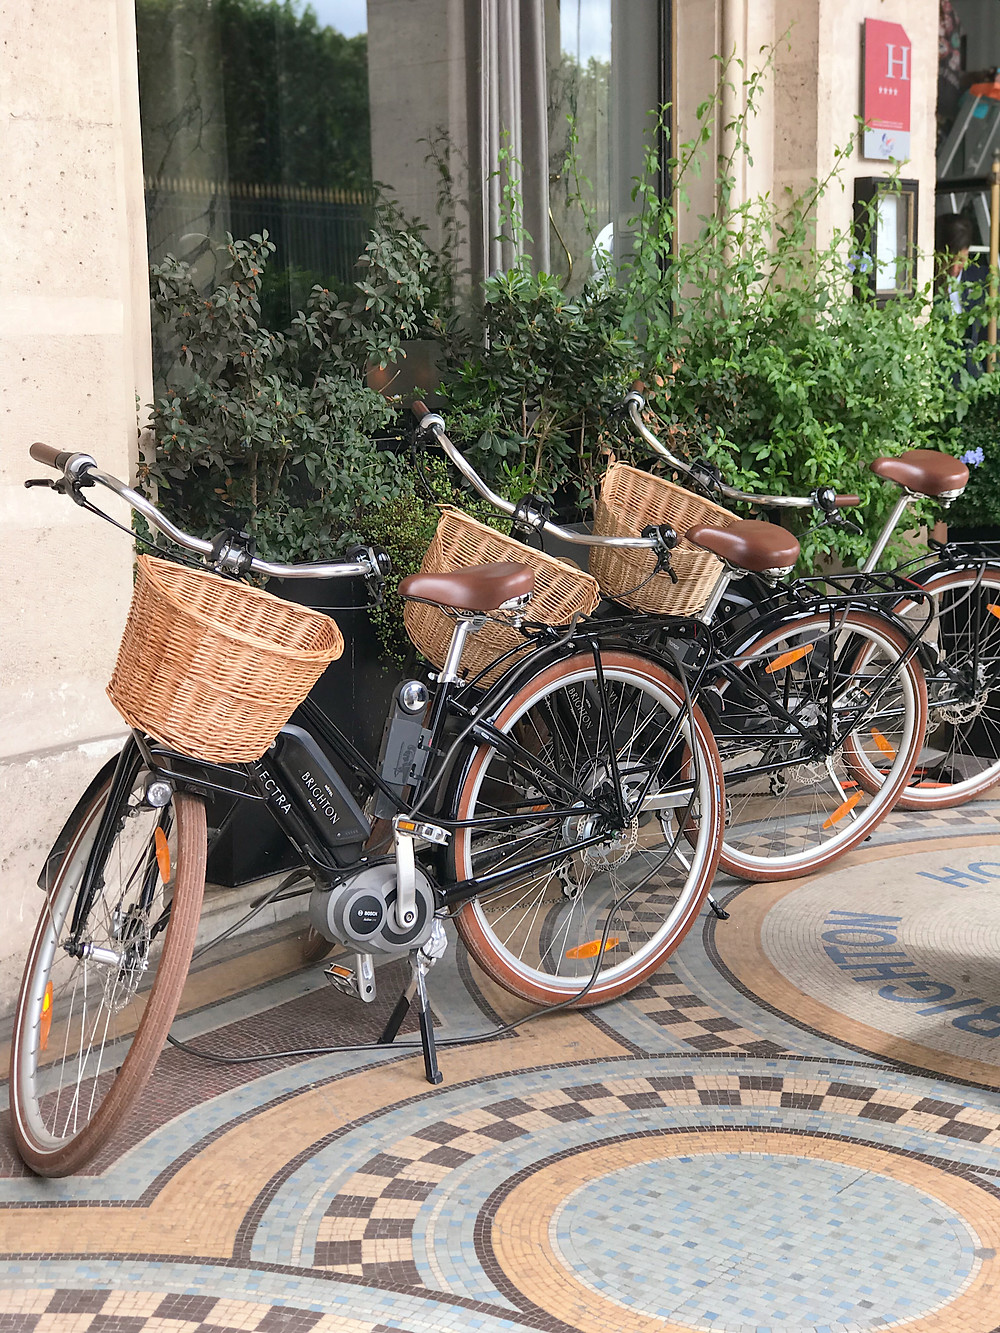 bicycles lined up in front of building